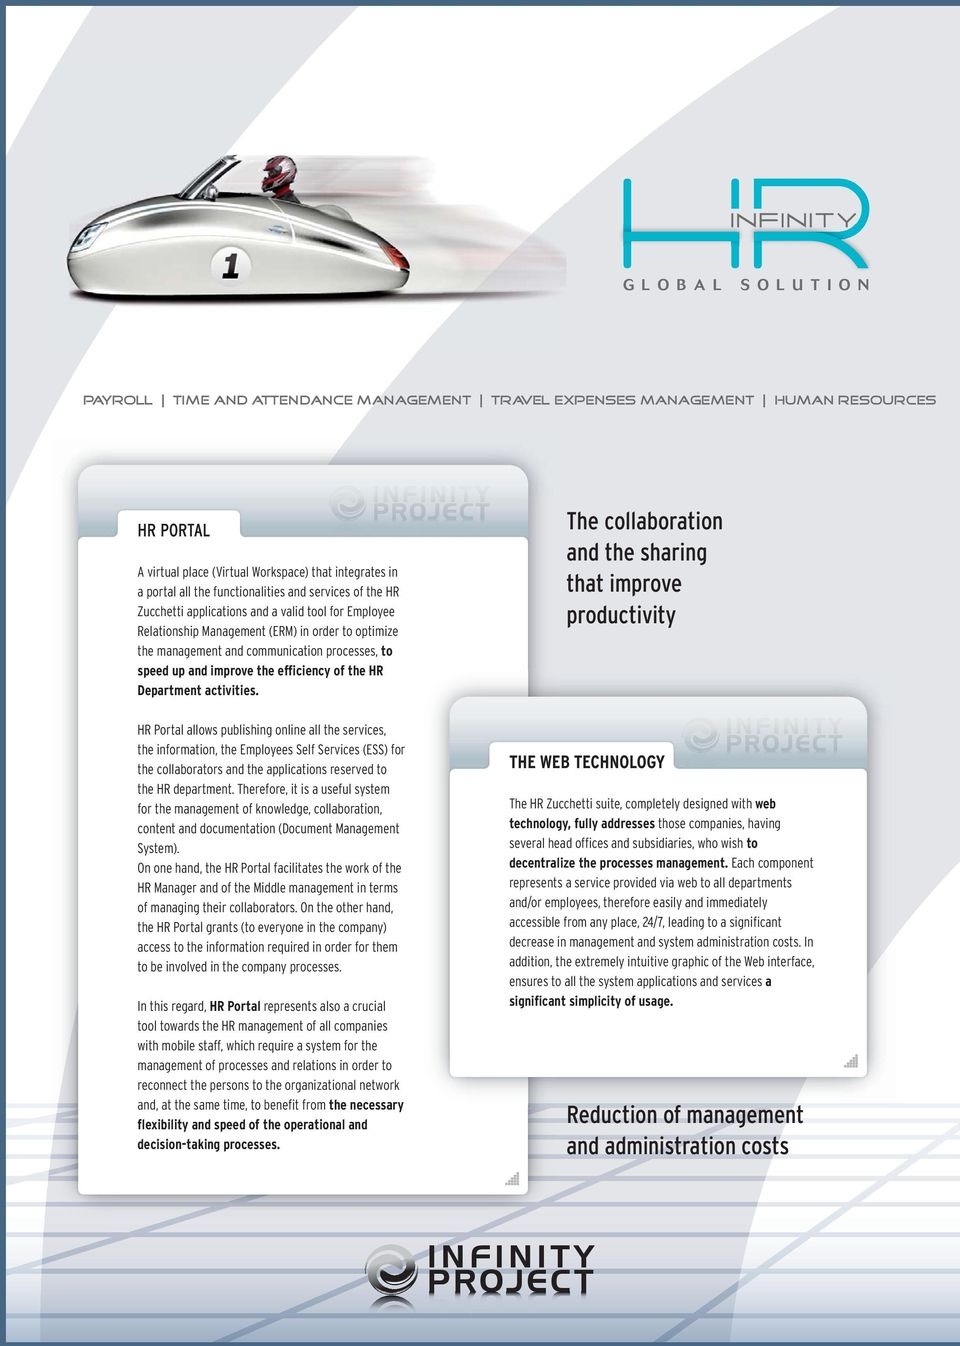 Department activities. HR Portal allows publishing online all the services, the information, the Employees Self Services (ESS) for the collaborators and the applications reserved to the HR department.